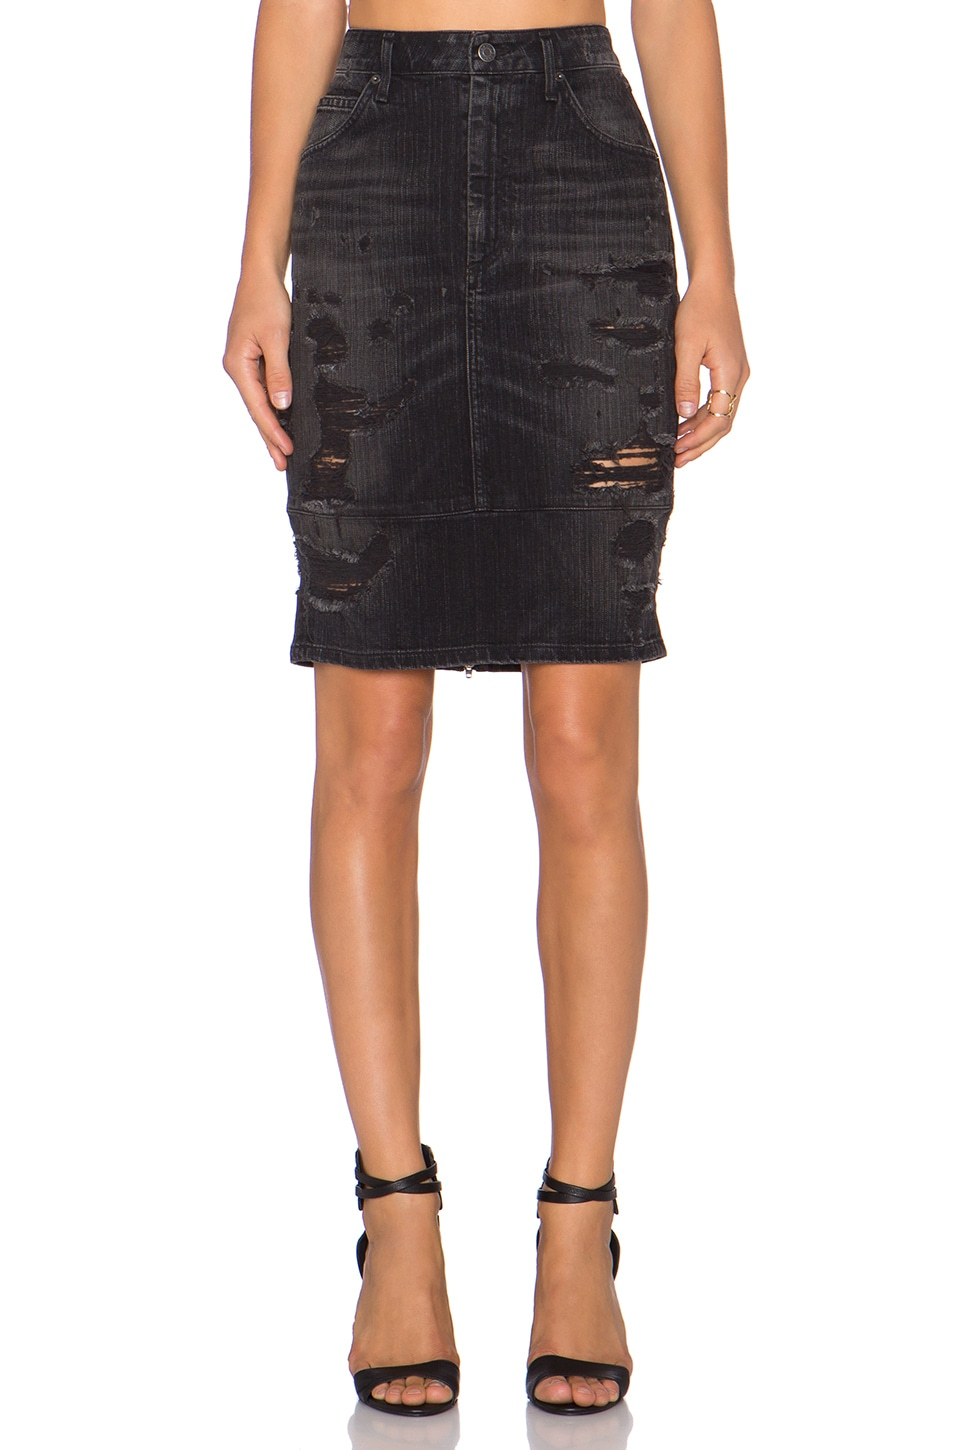 AGOLDE A Gold E Amie Pencil Skirt in Liverpool